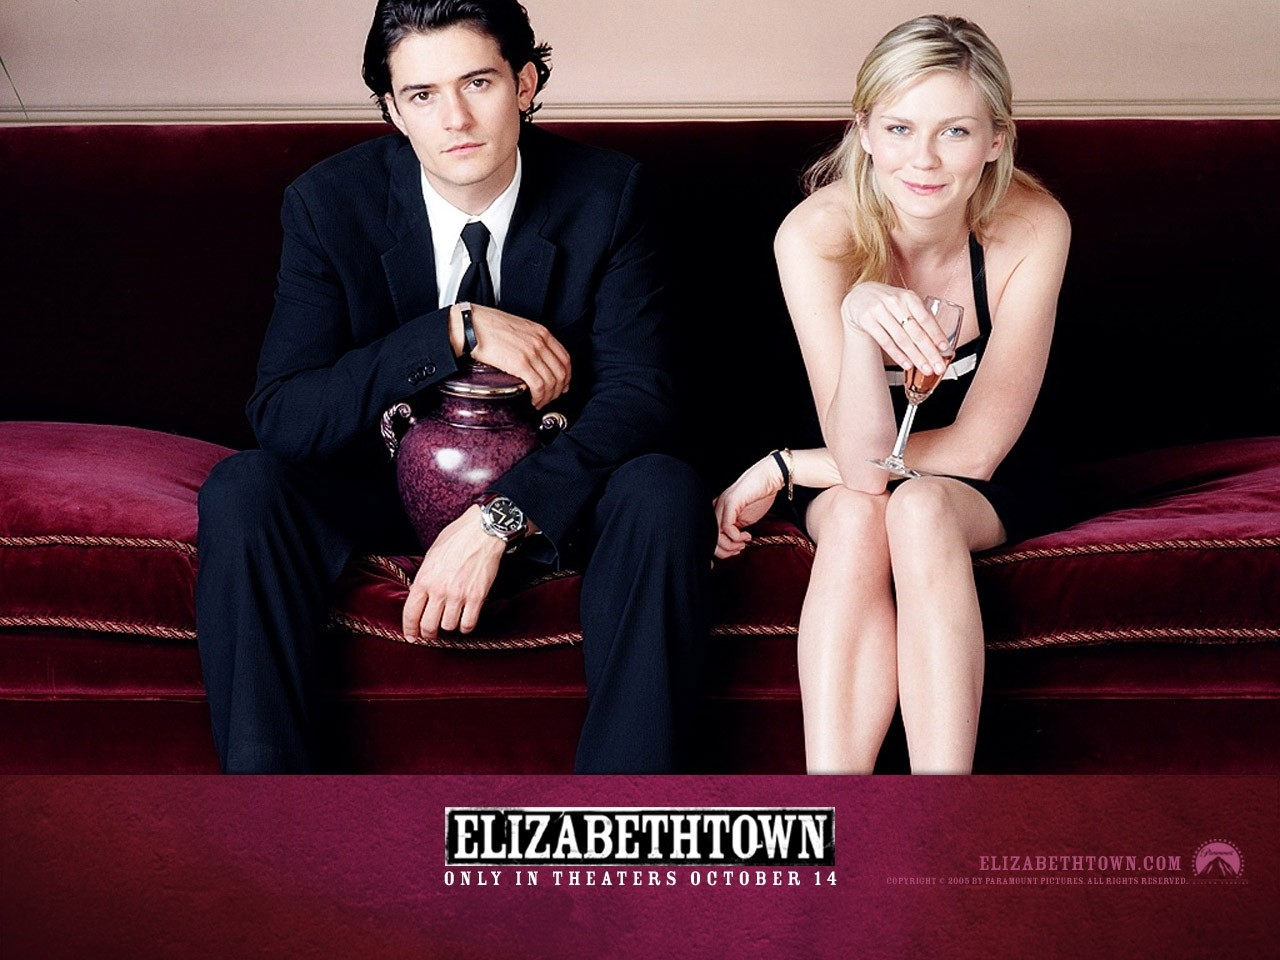 Wallpaper del film Elizabethtown con Kirsten Dunst e Orlando Bloom